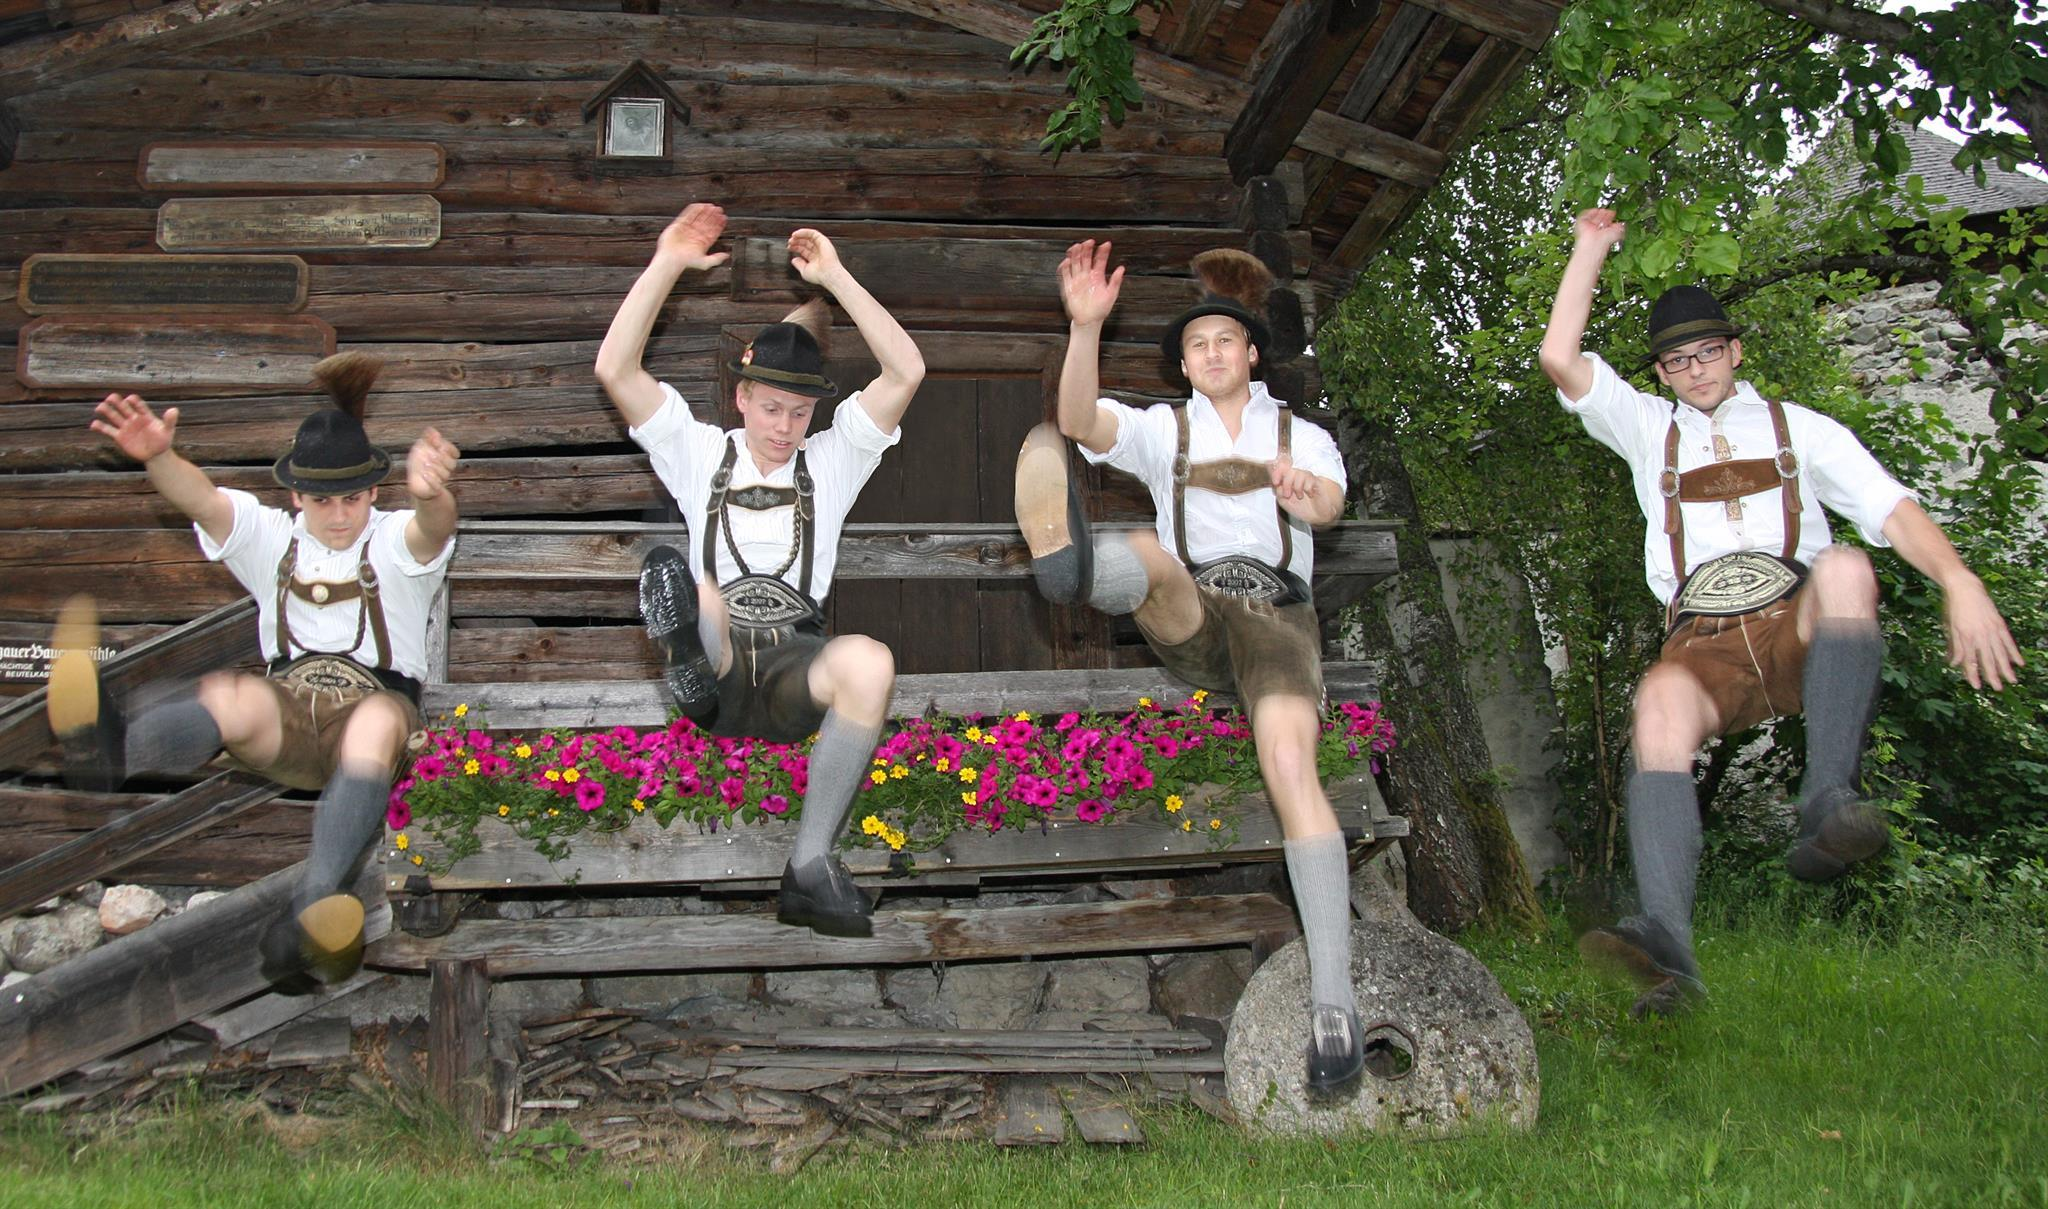 Traditional evening at the castle Kaprun - 07/07/2020, from 8:00 PM